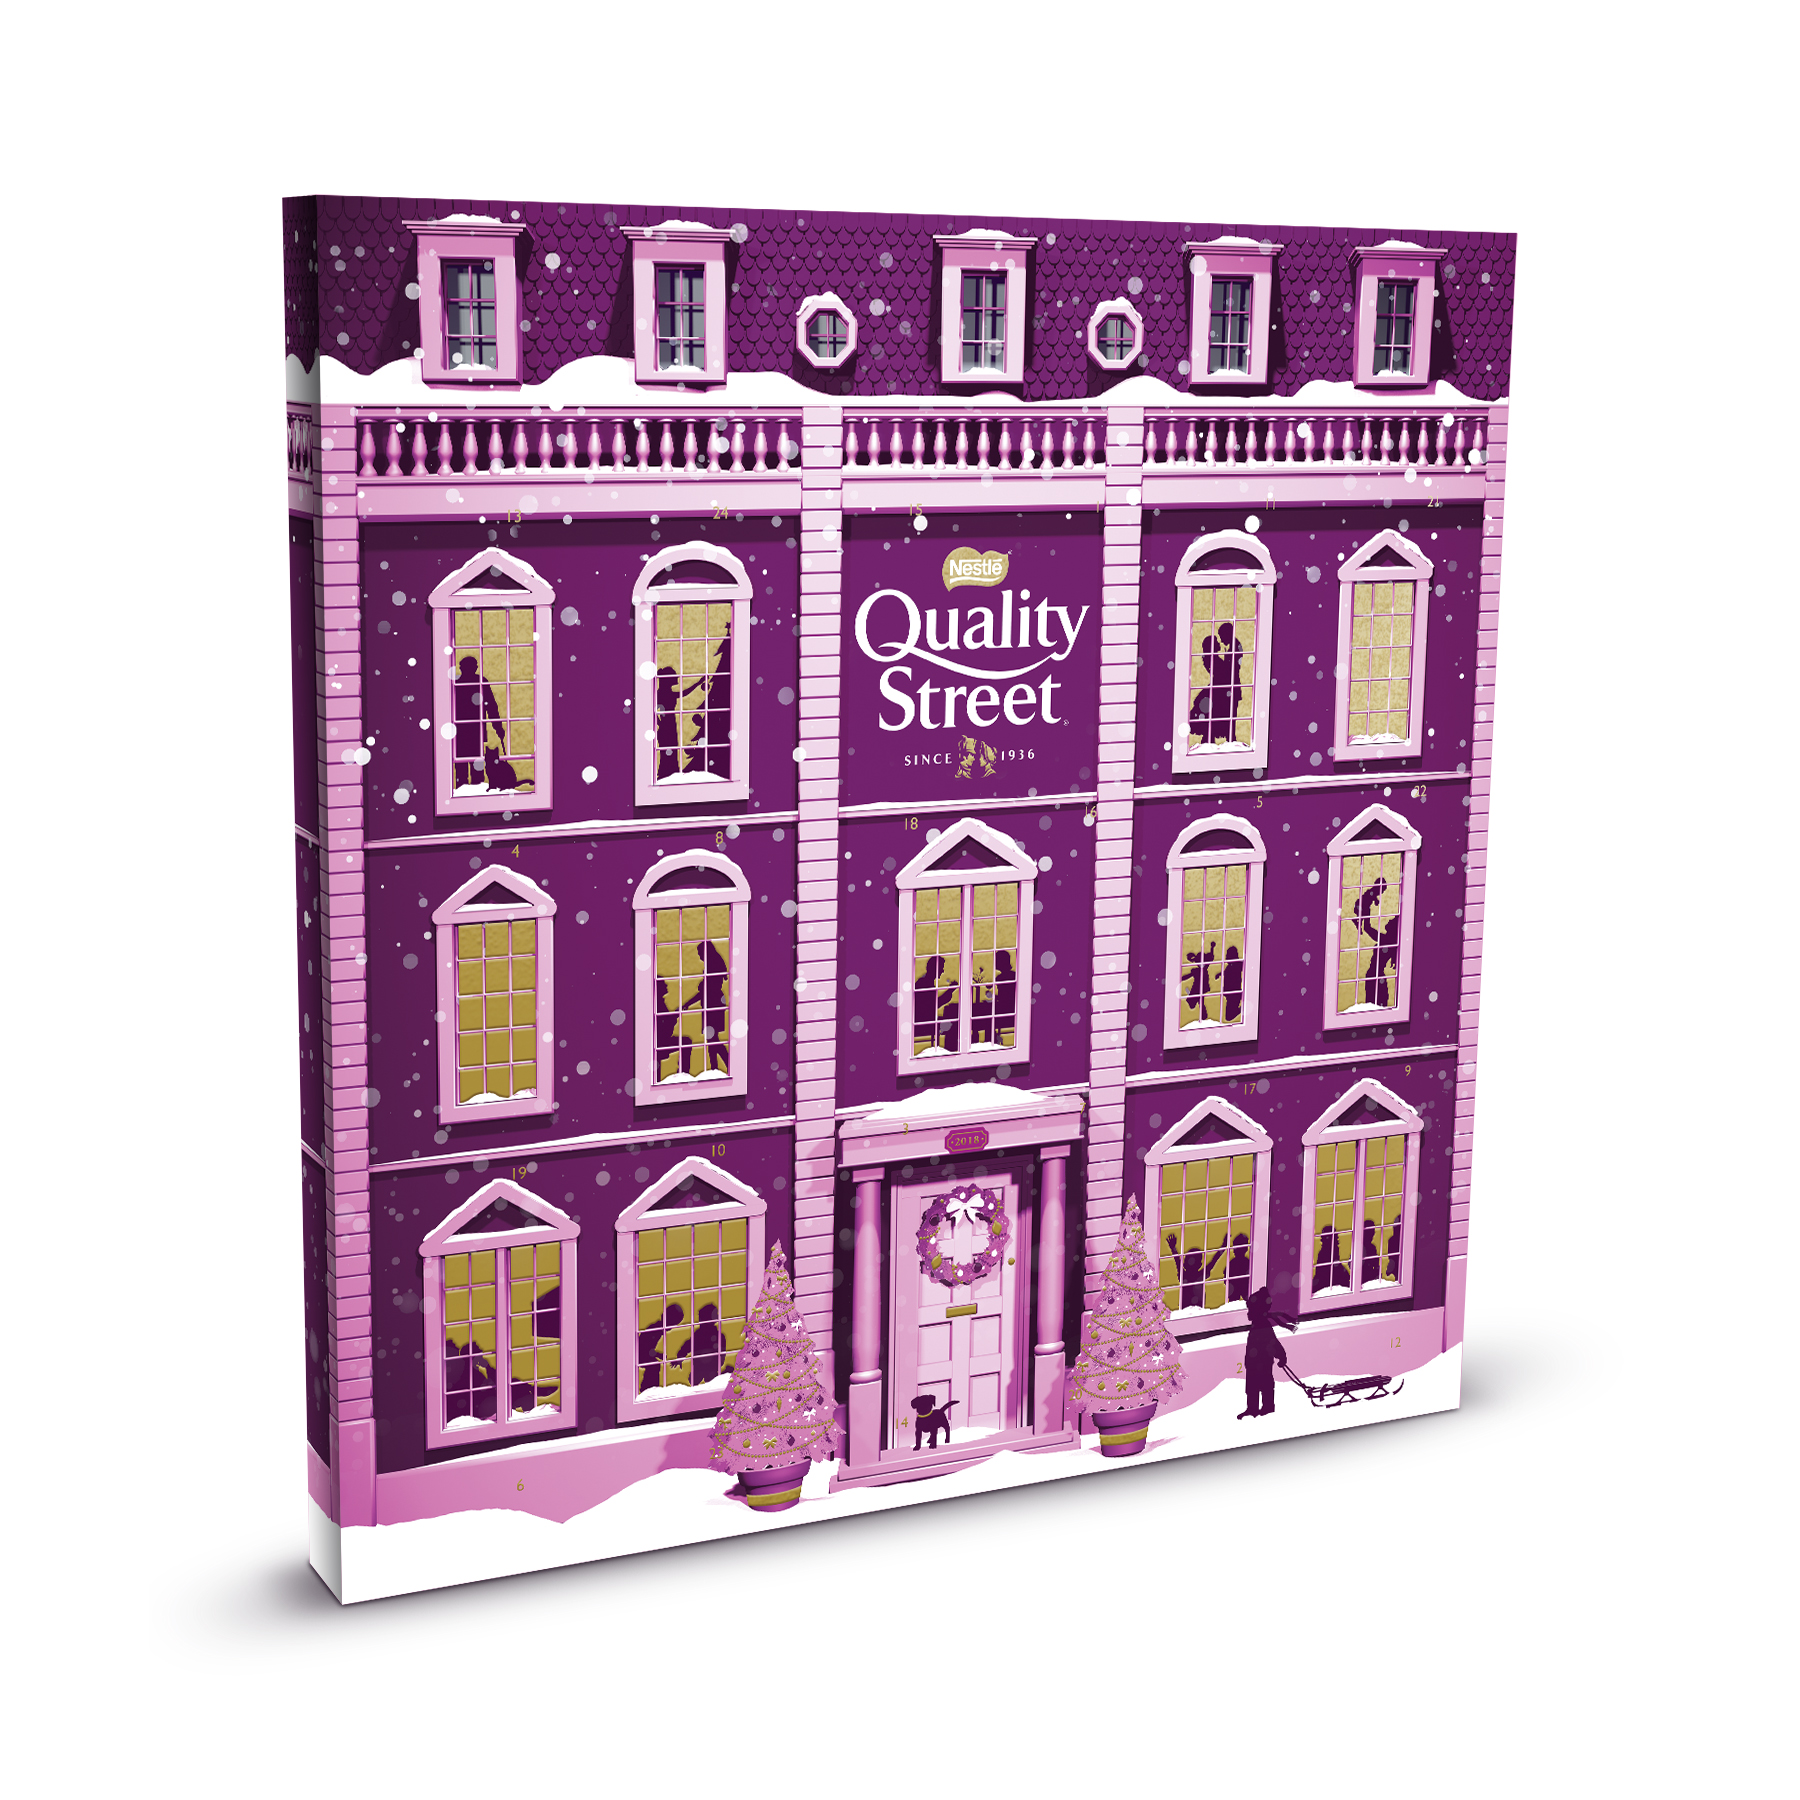 Nestle Quality Street Advent Calendar Ref 12373610